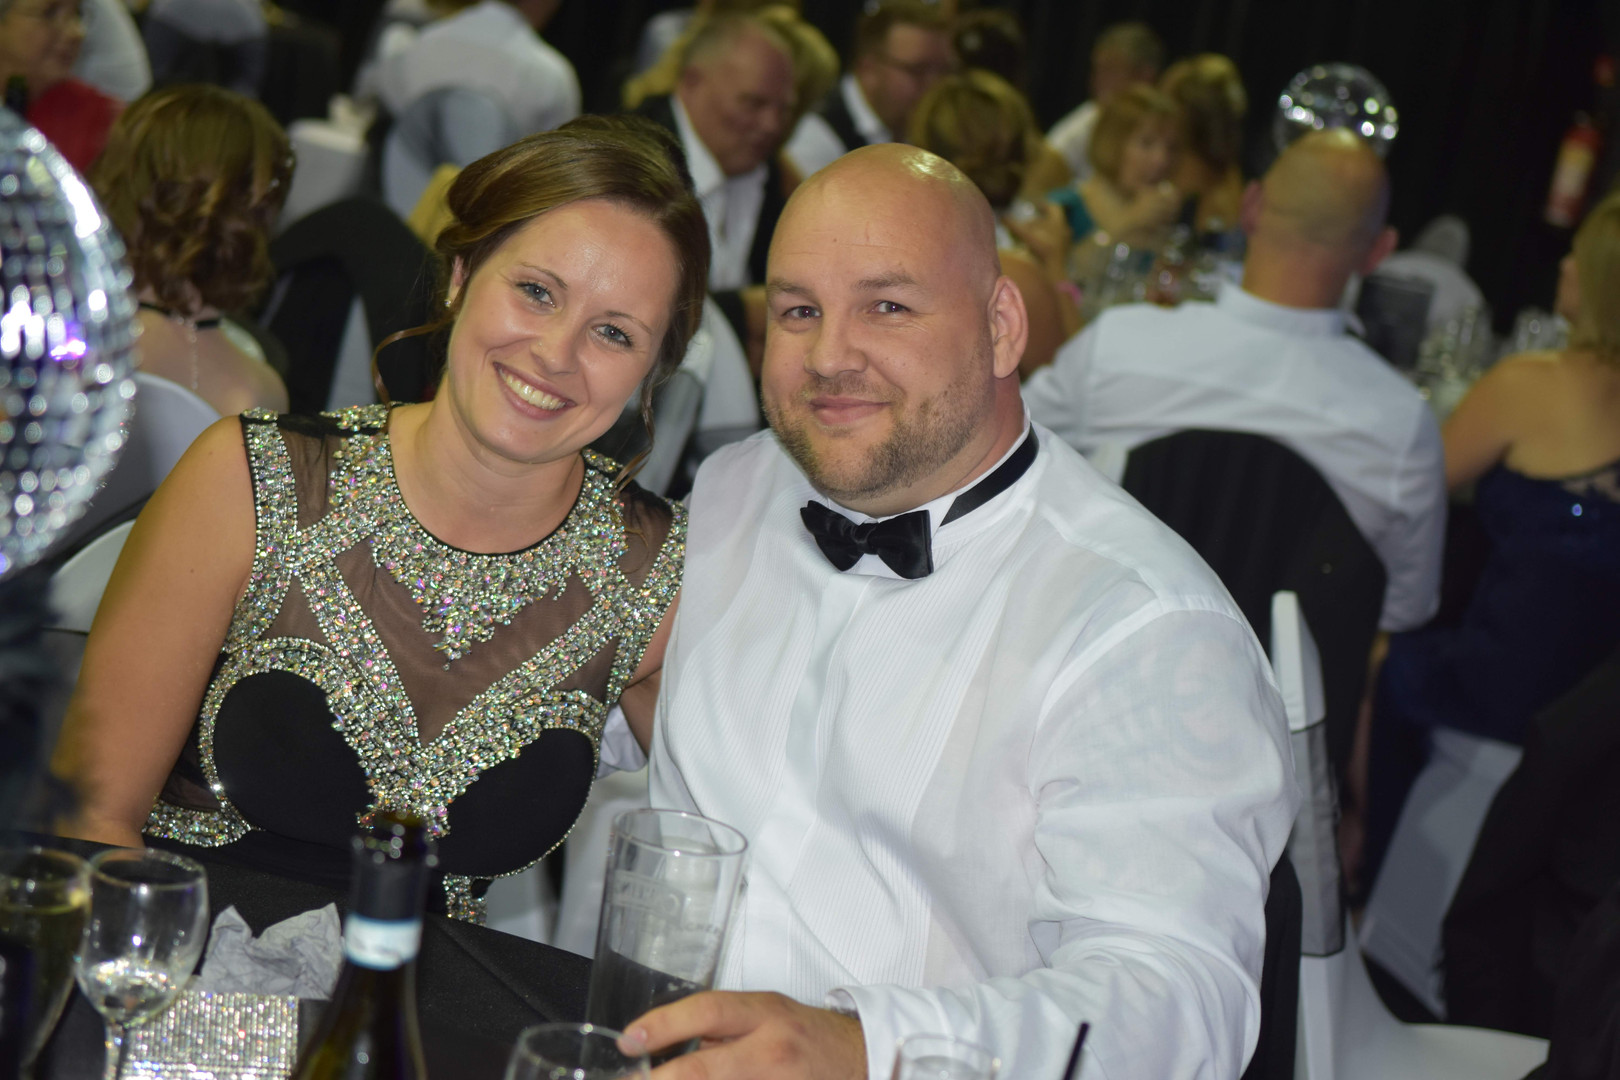 Lincolnshire Air Amulance Charity Night